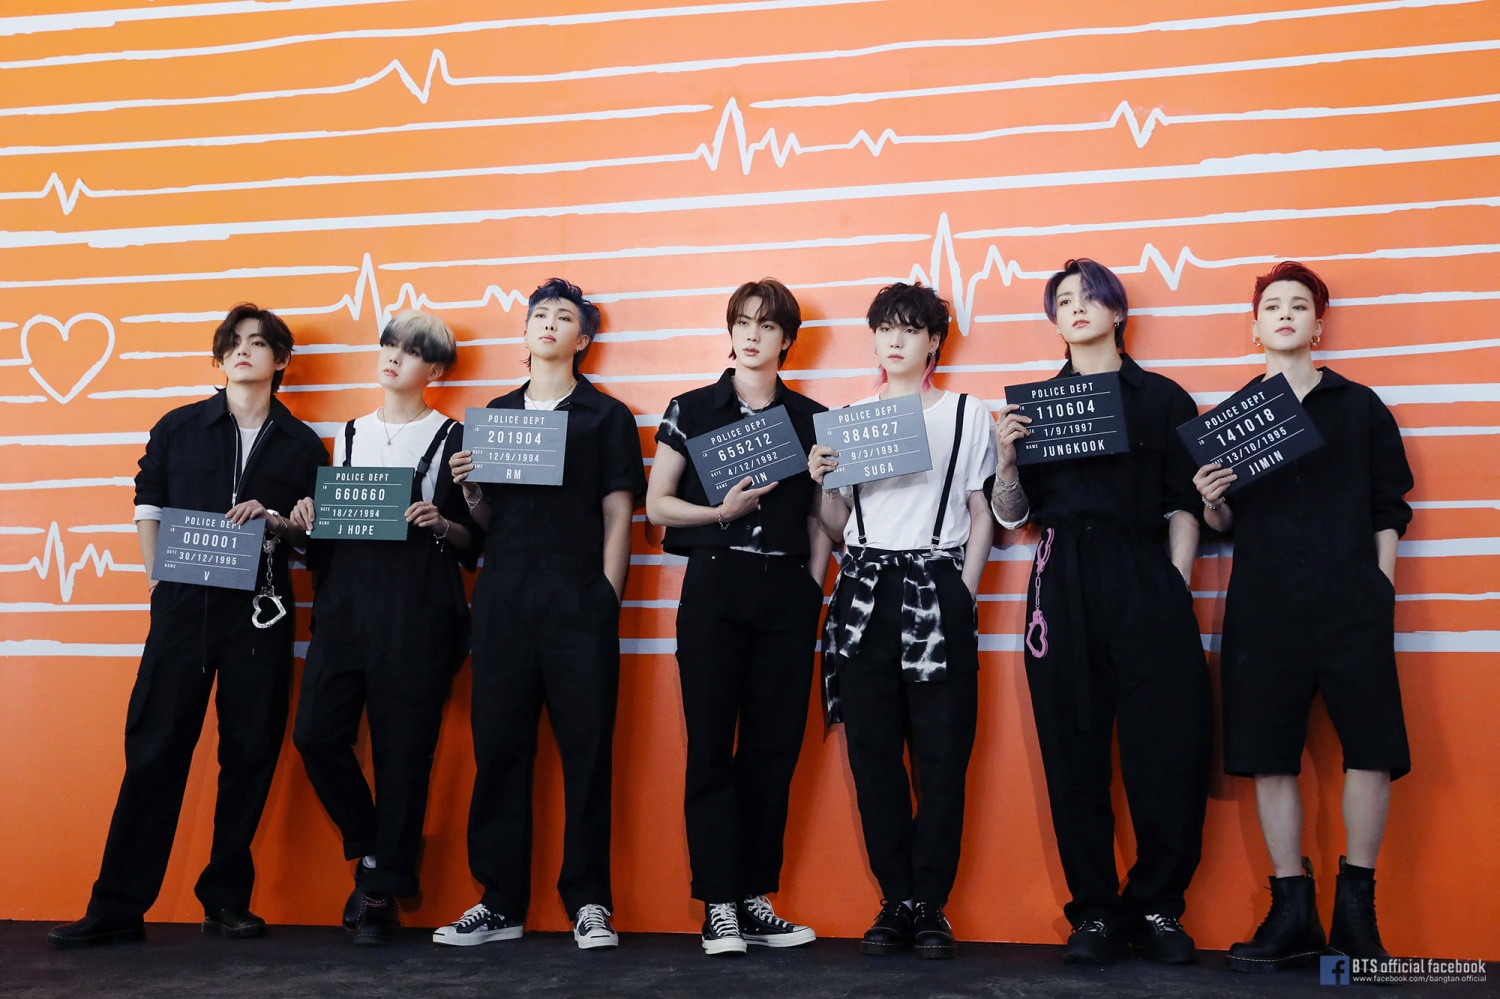 BTS, 'Permission to Dance', 'Butter' ranked 1st and 2nd on Oricon weekly streaming in Japan